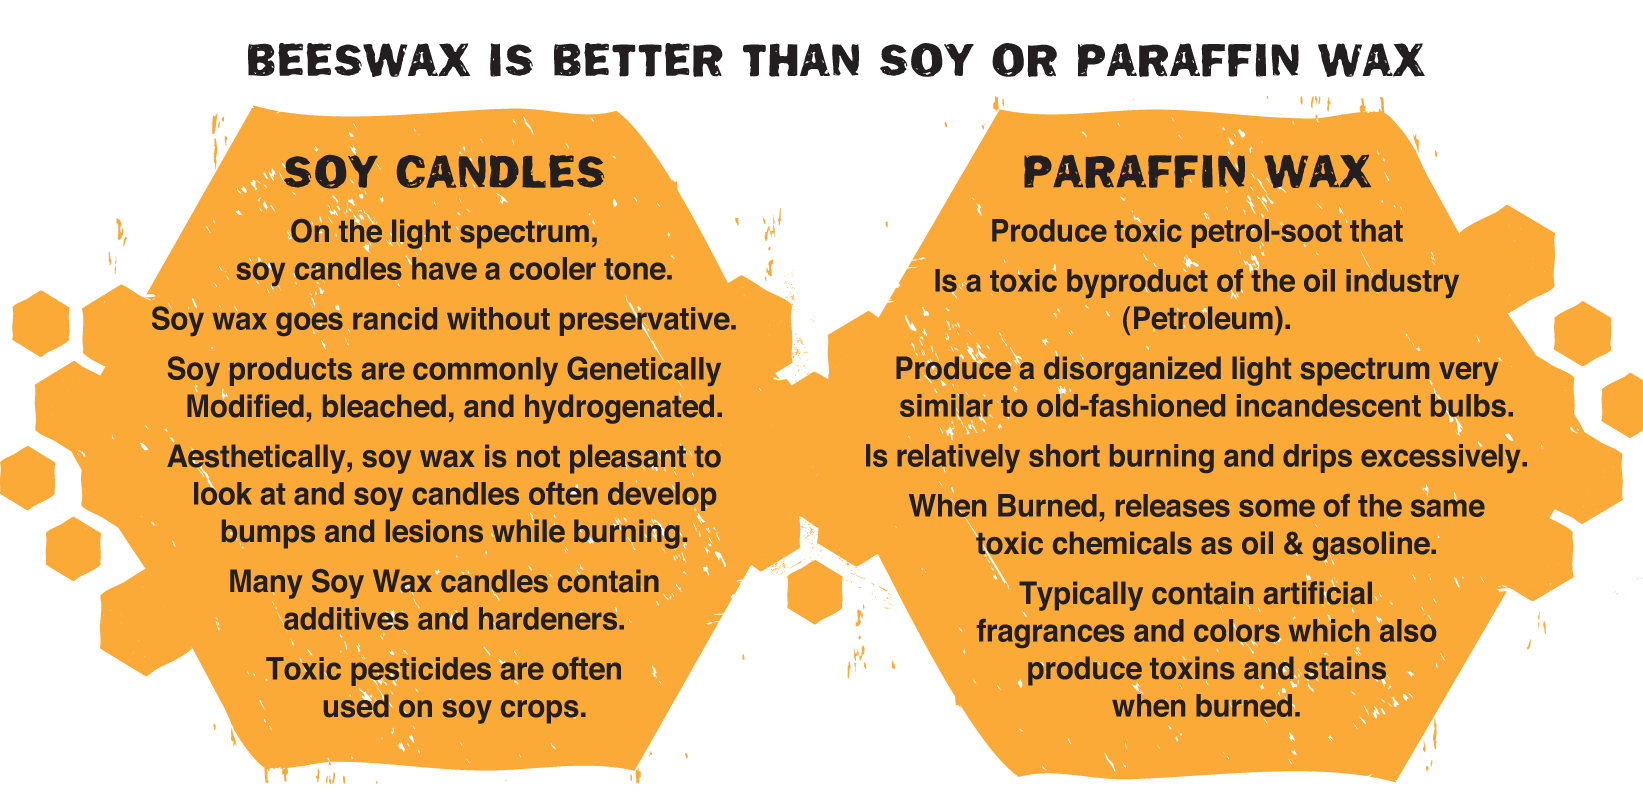 Why is Beeswax the Best for Candles?